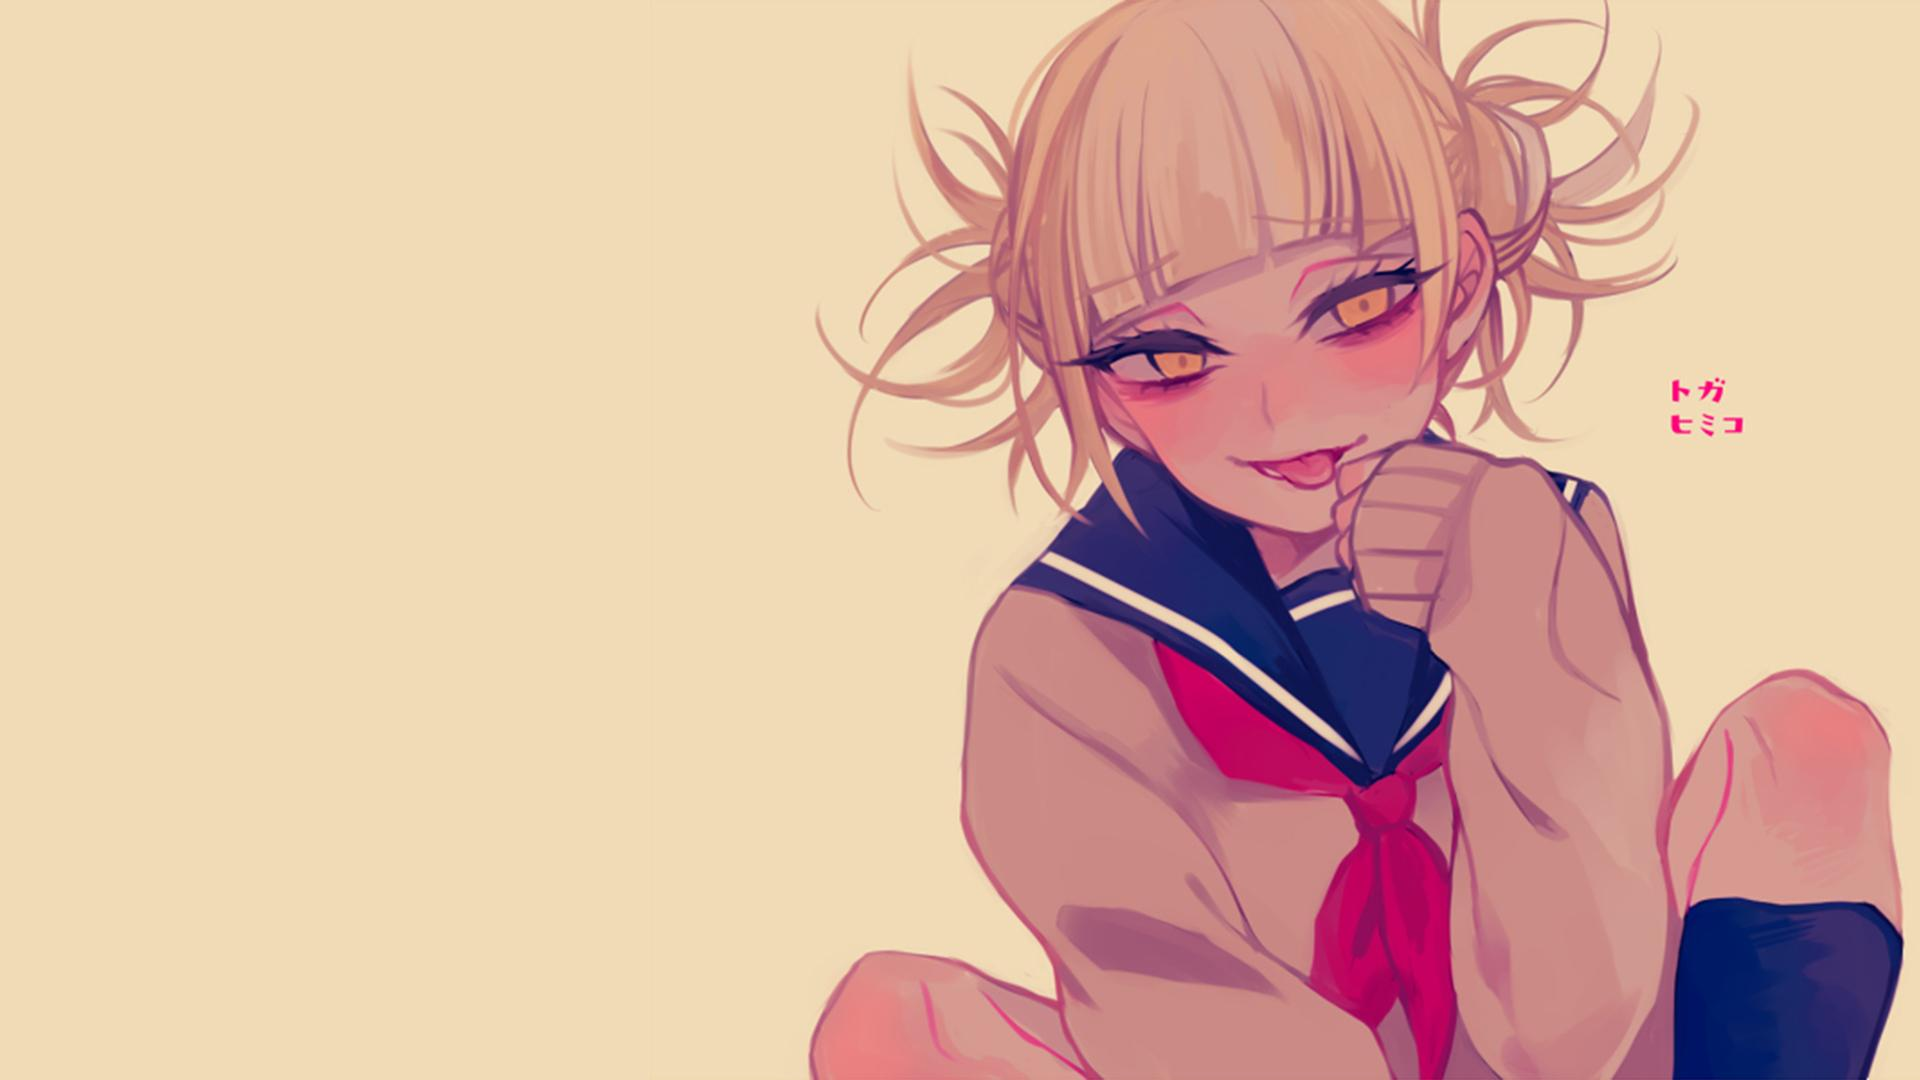 Anime Toga Himiko Wallpapers - Wallpaper Cave